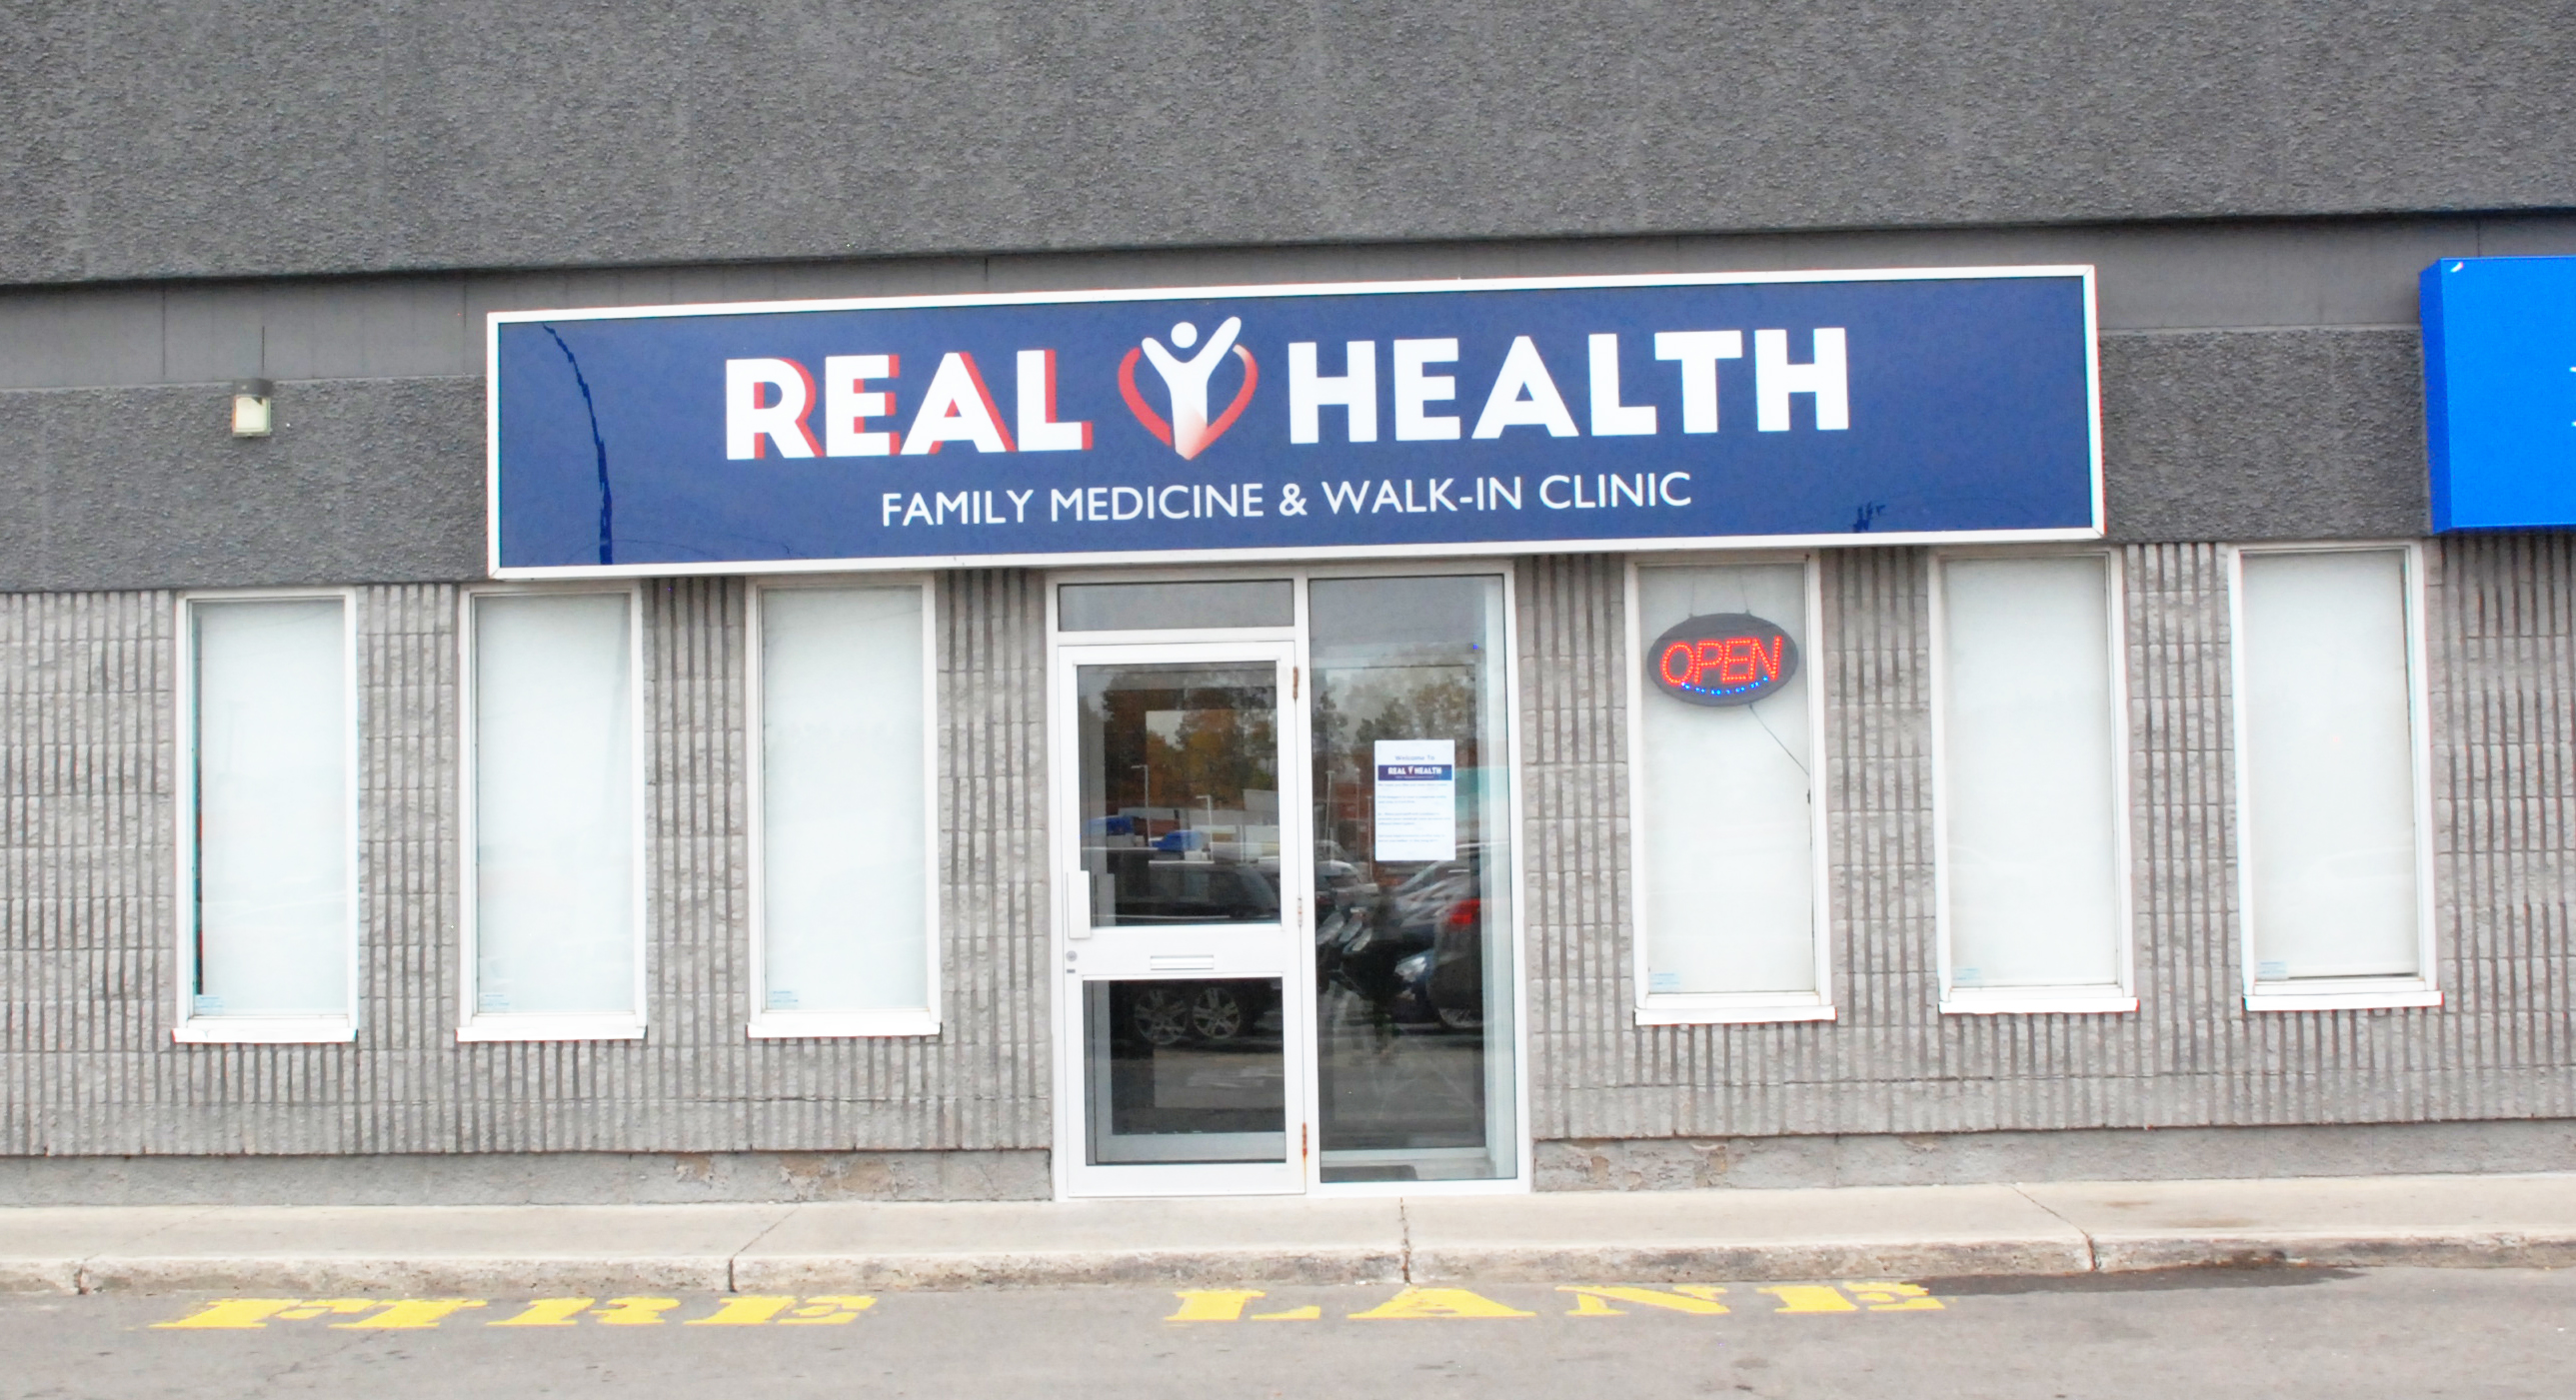 Real Health - Family Medicine & Walk-in